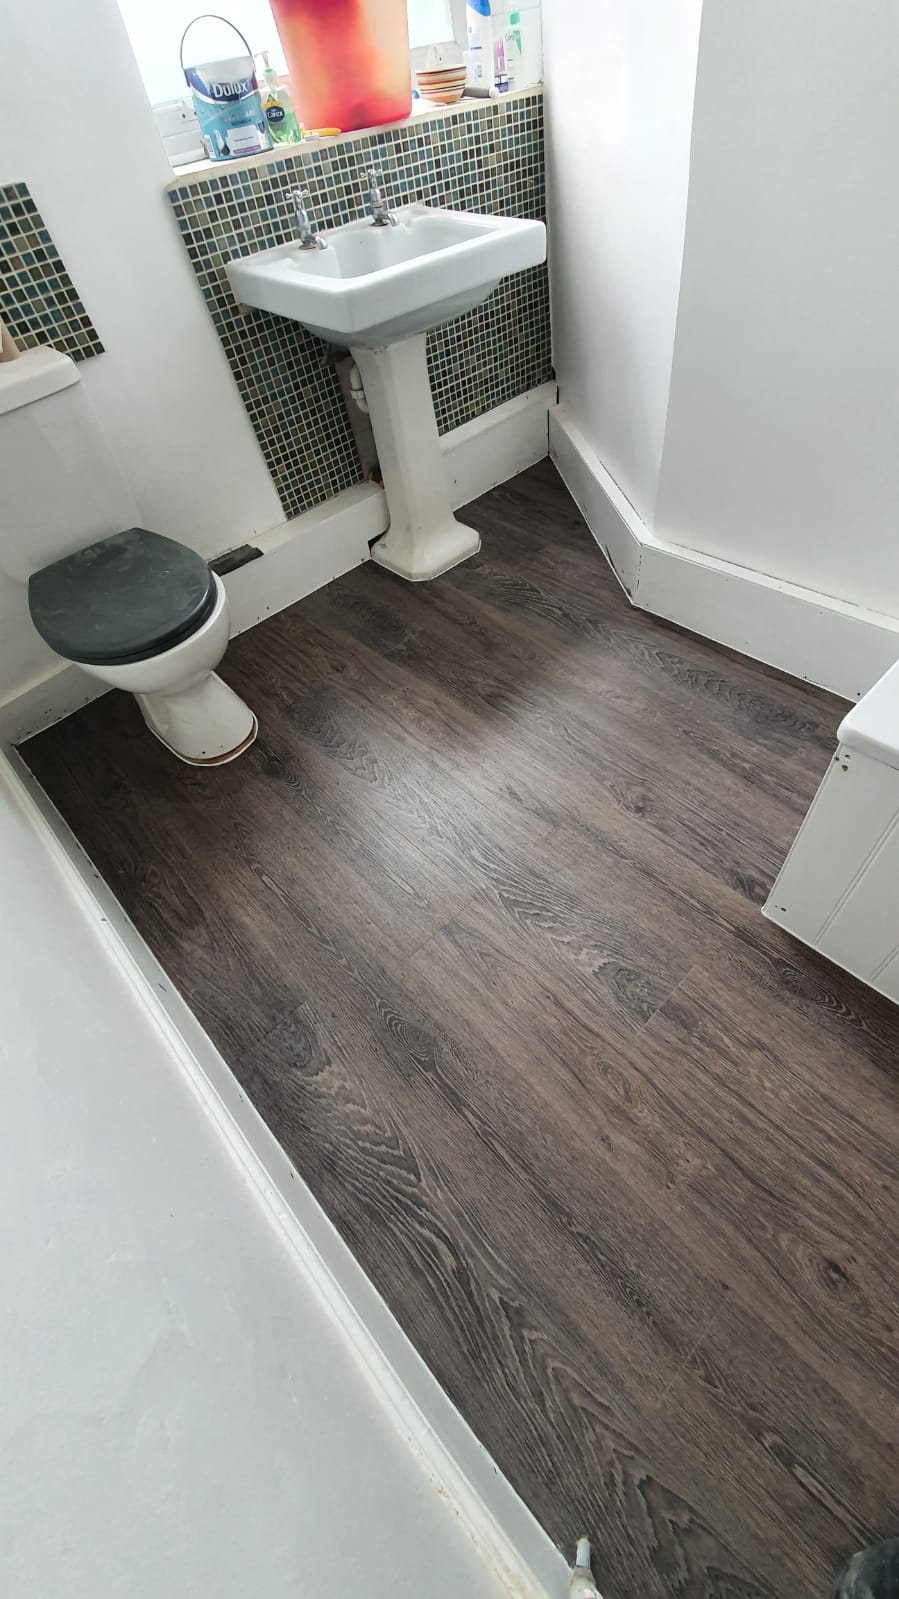 Amtico Spacia Bruges Oak Luxury Vinyl Tile in Islington 2